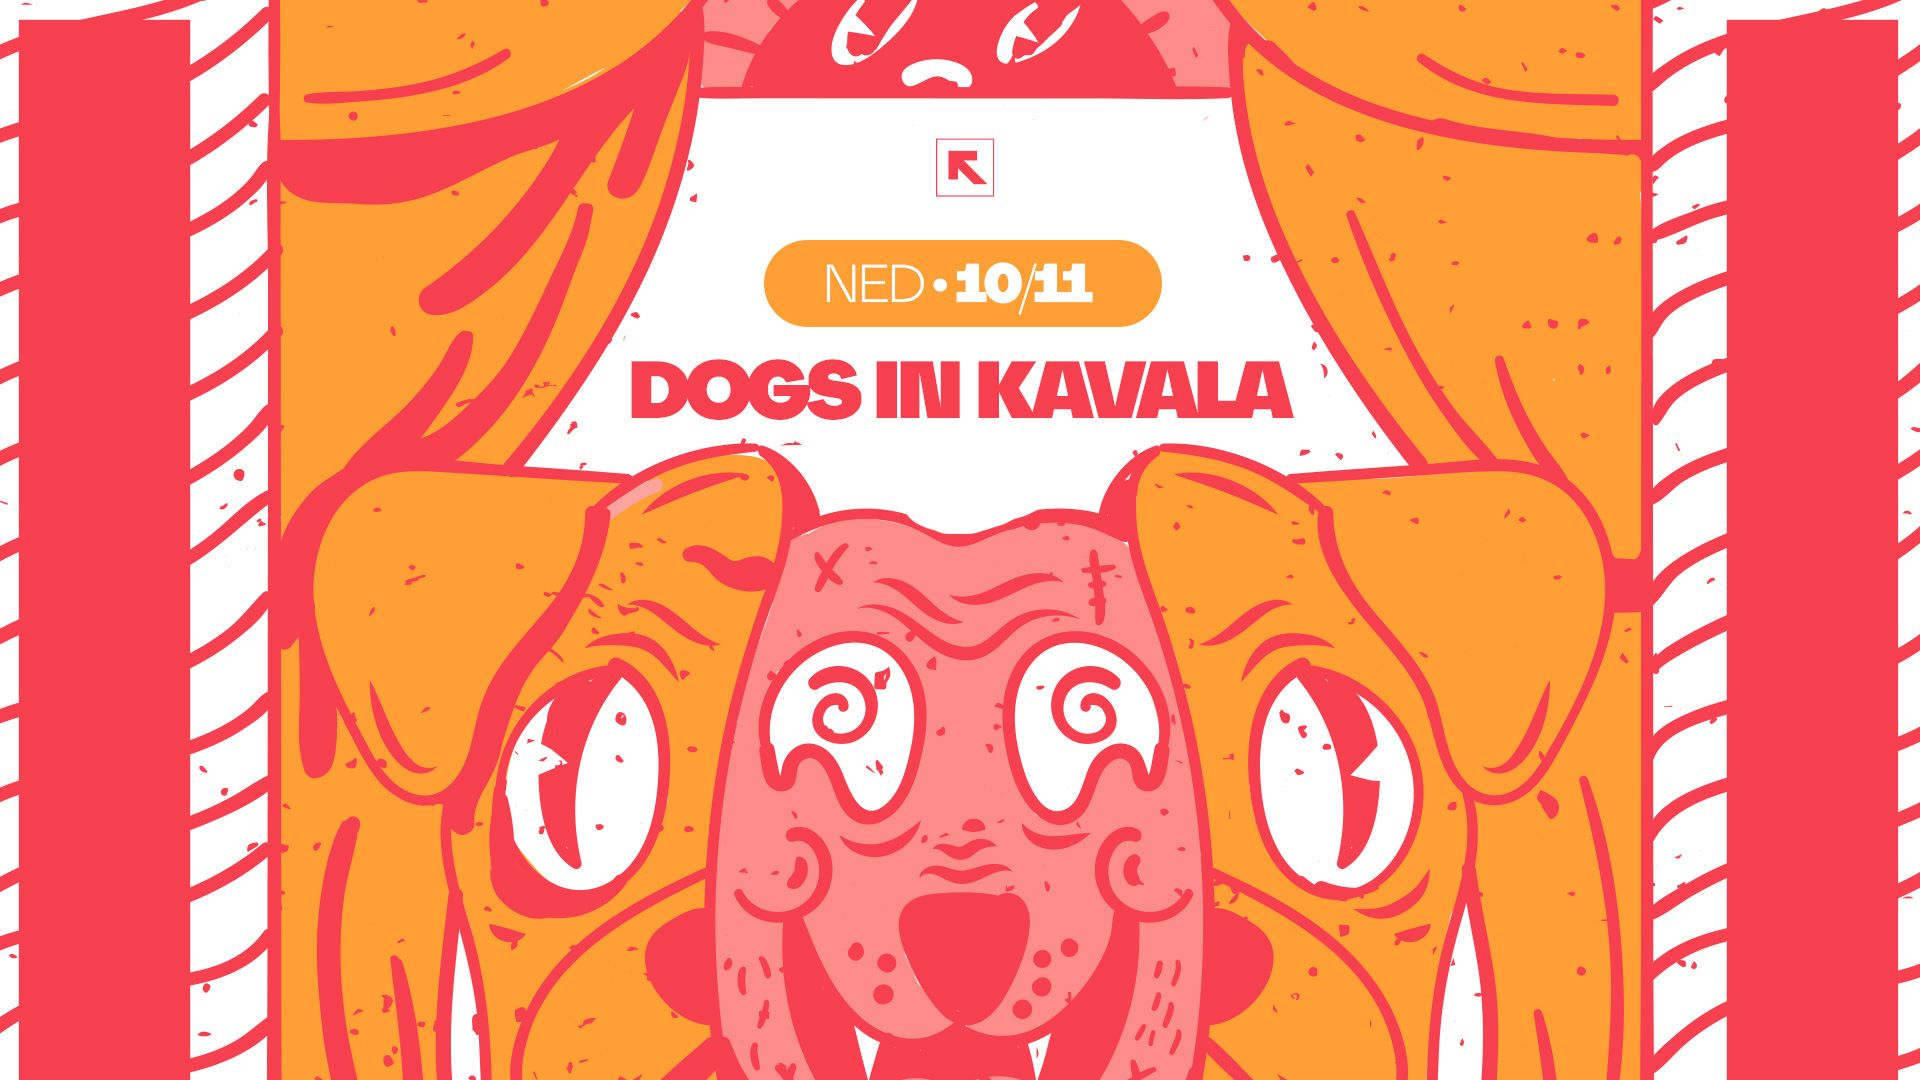 Dogs in Kavala - 10. Nov - Feedback